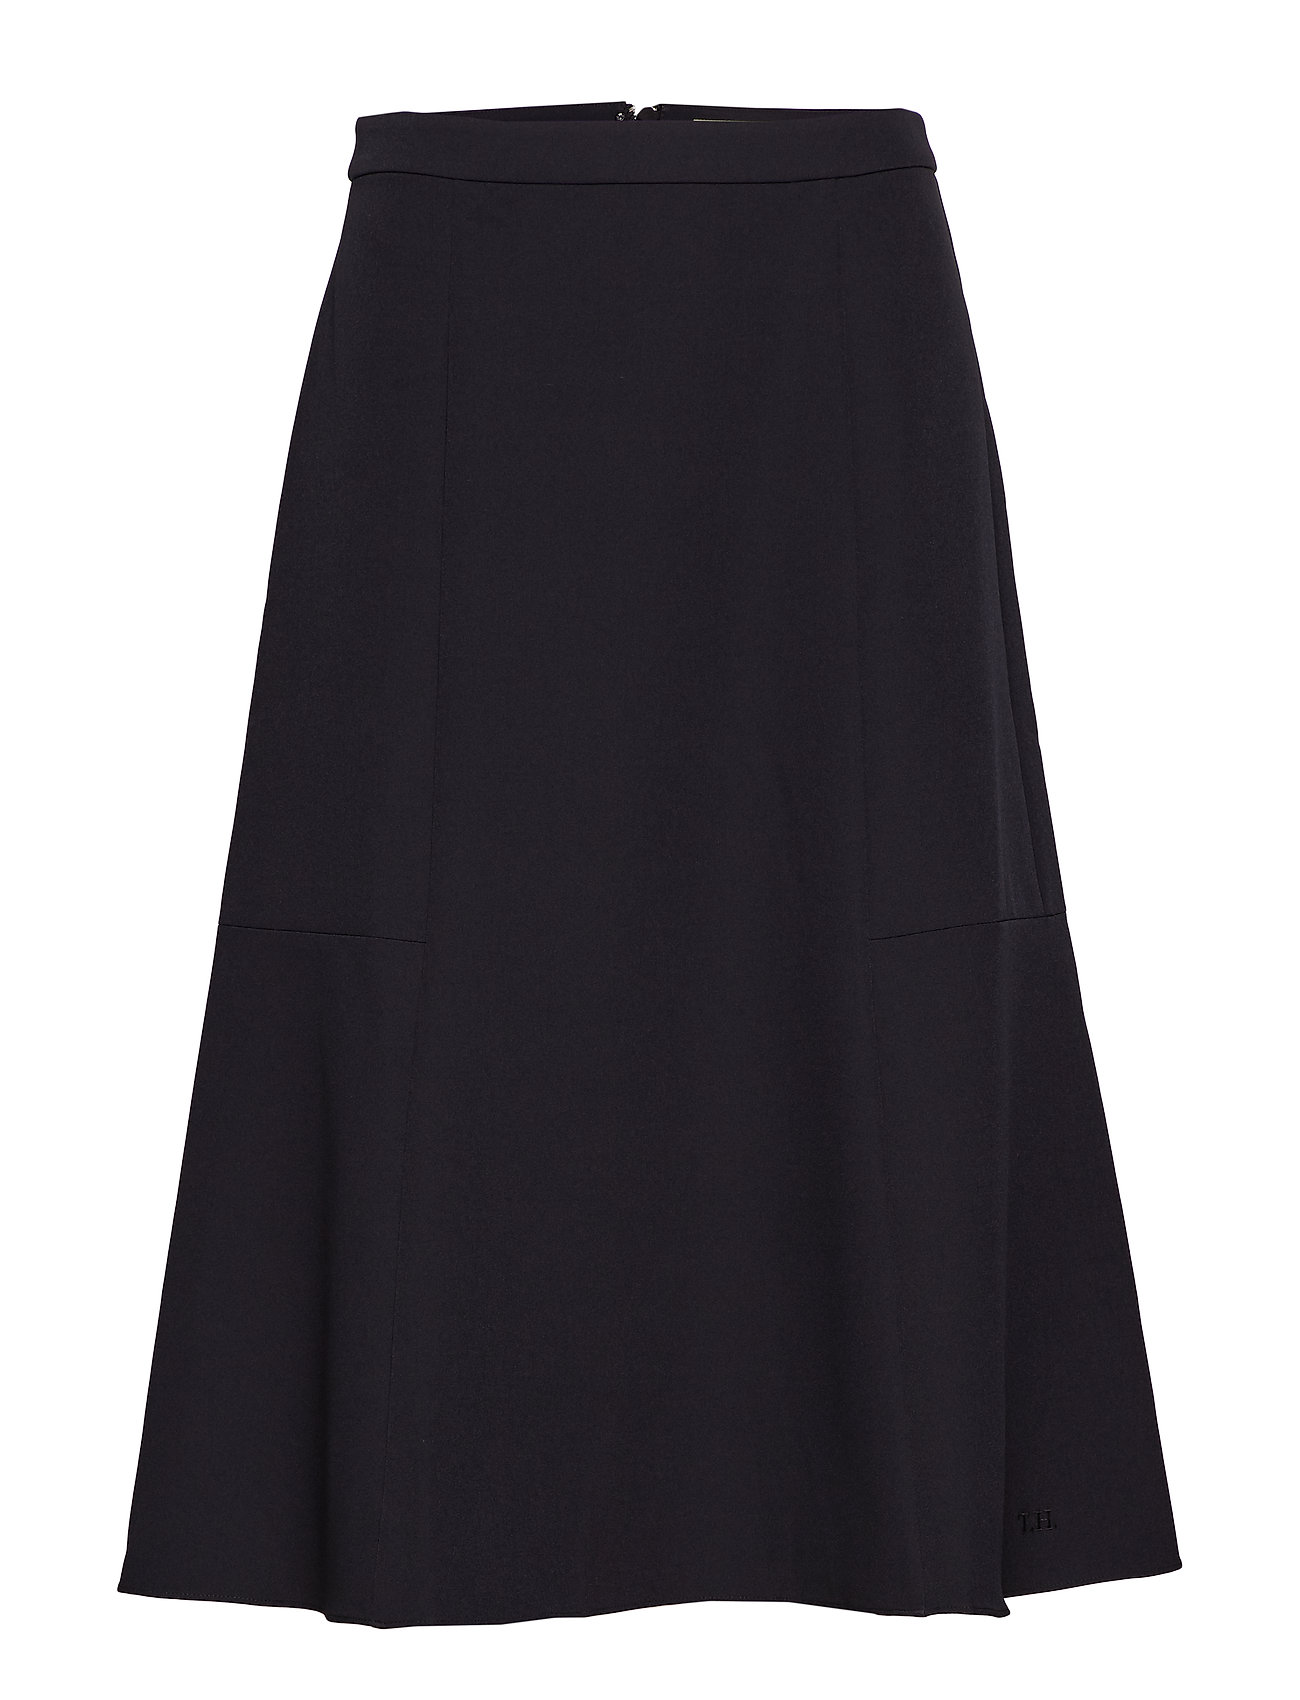 Tommy Hilfiger ANGELA SKIRT - BLACK BEAUTY